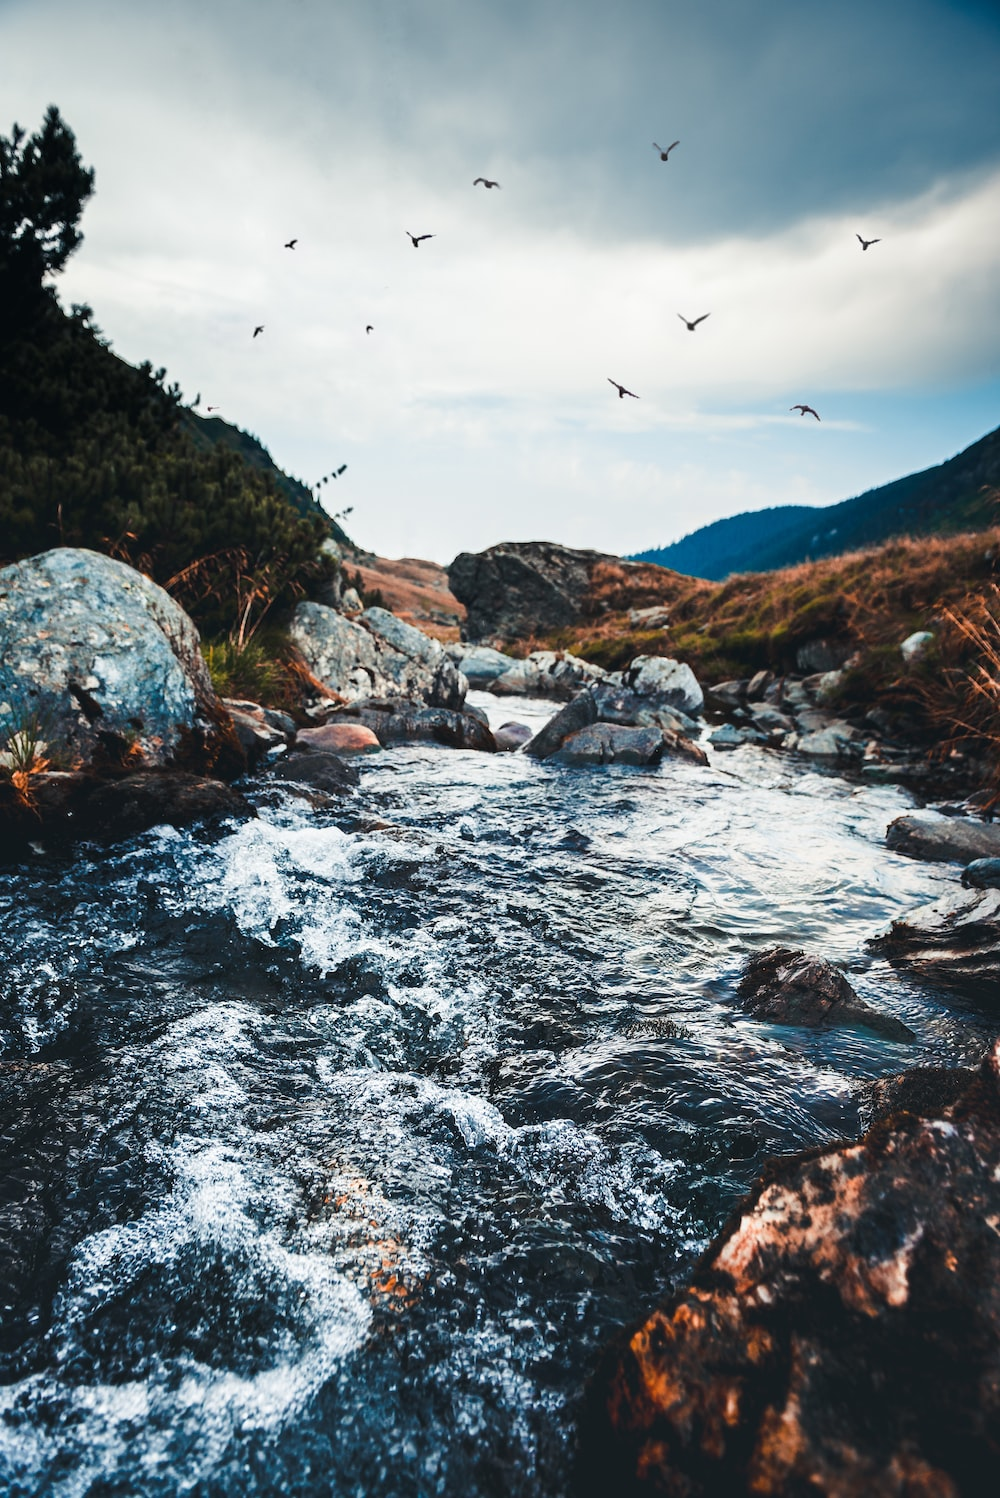 river surrounded by rocks